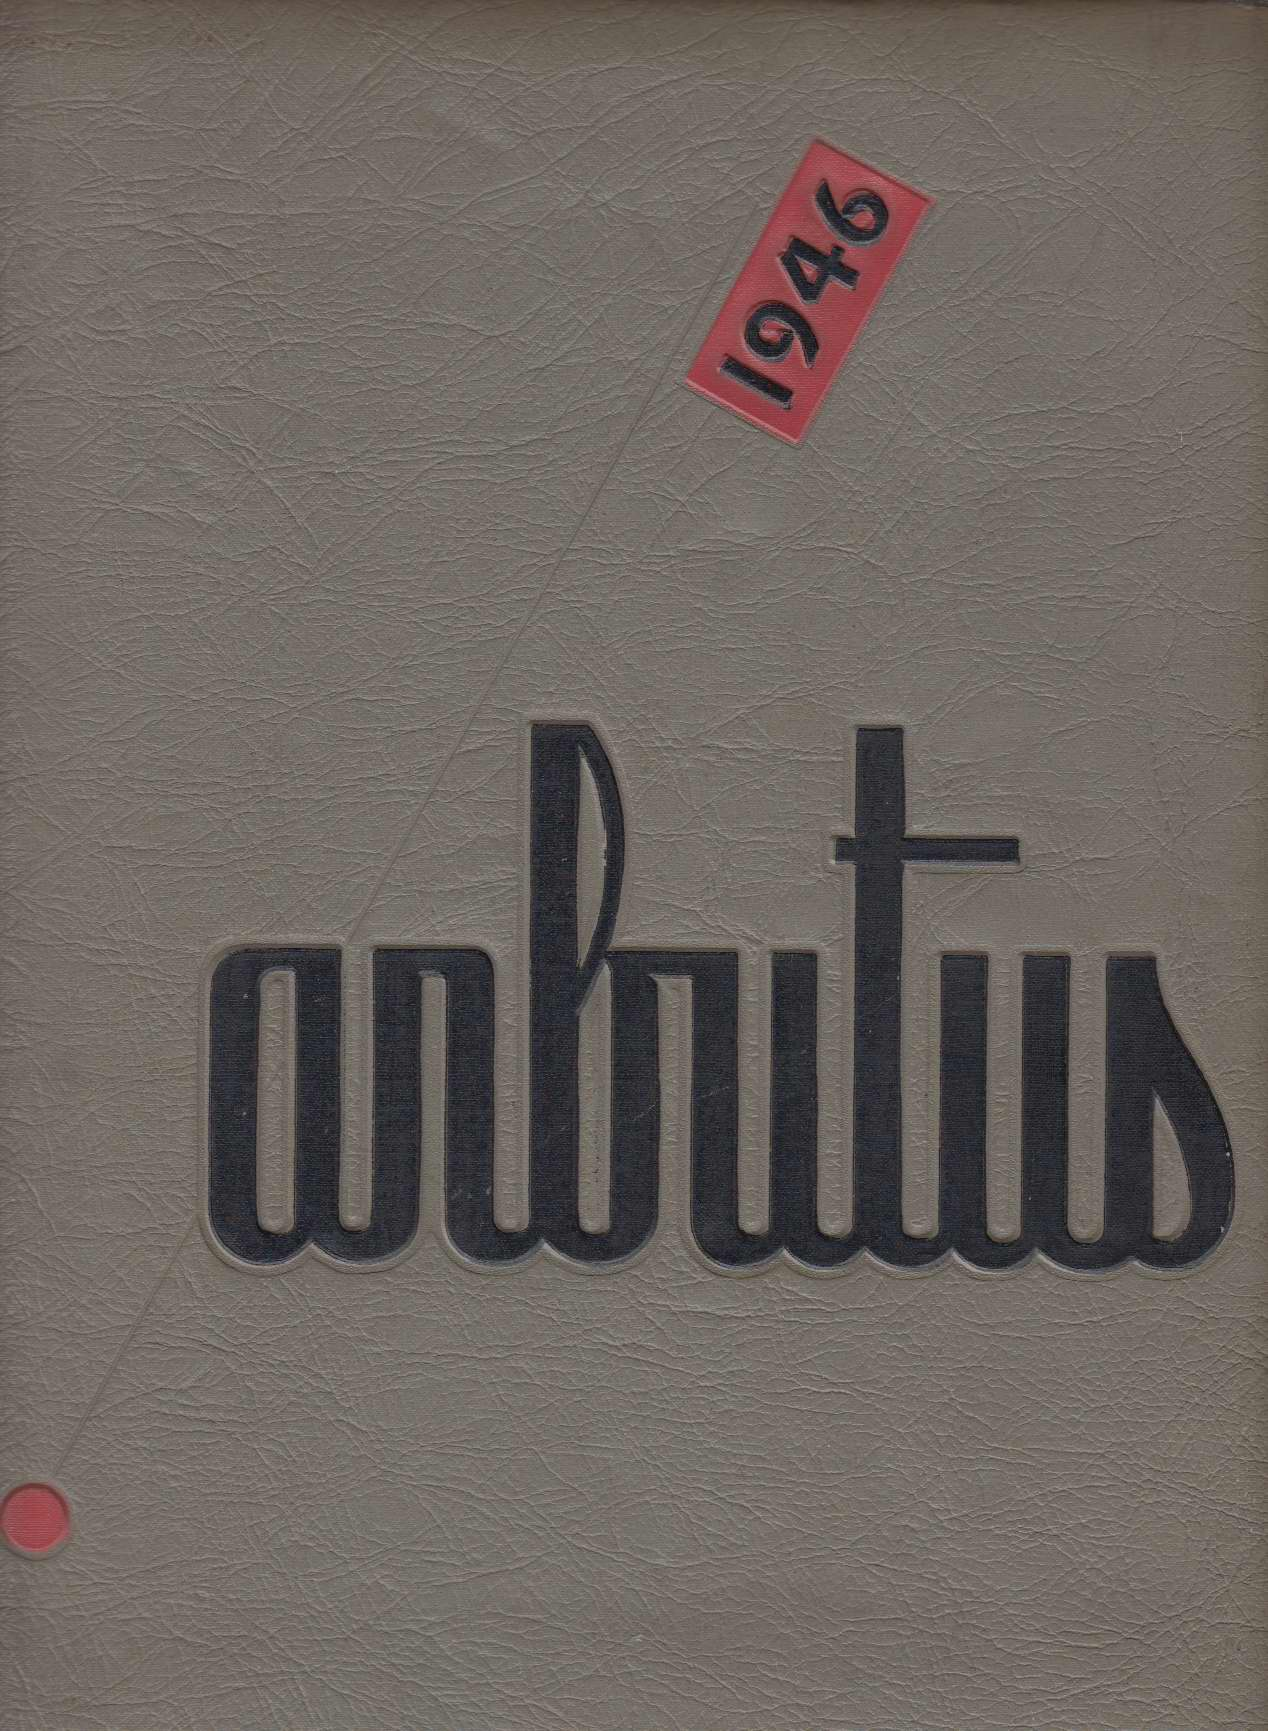 Image for Arbutus 1946 (Indiana University Yearbook, Volume 53)